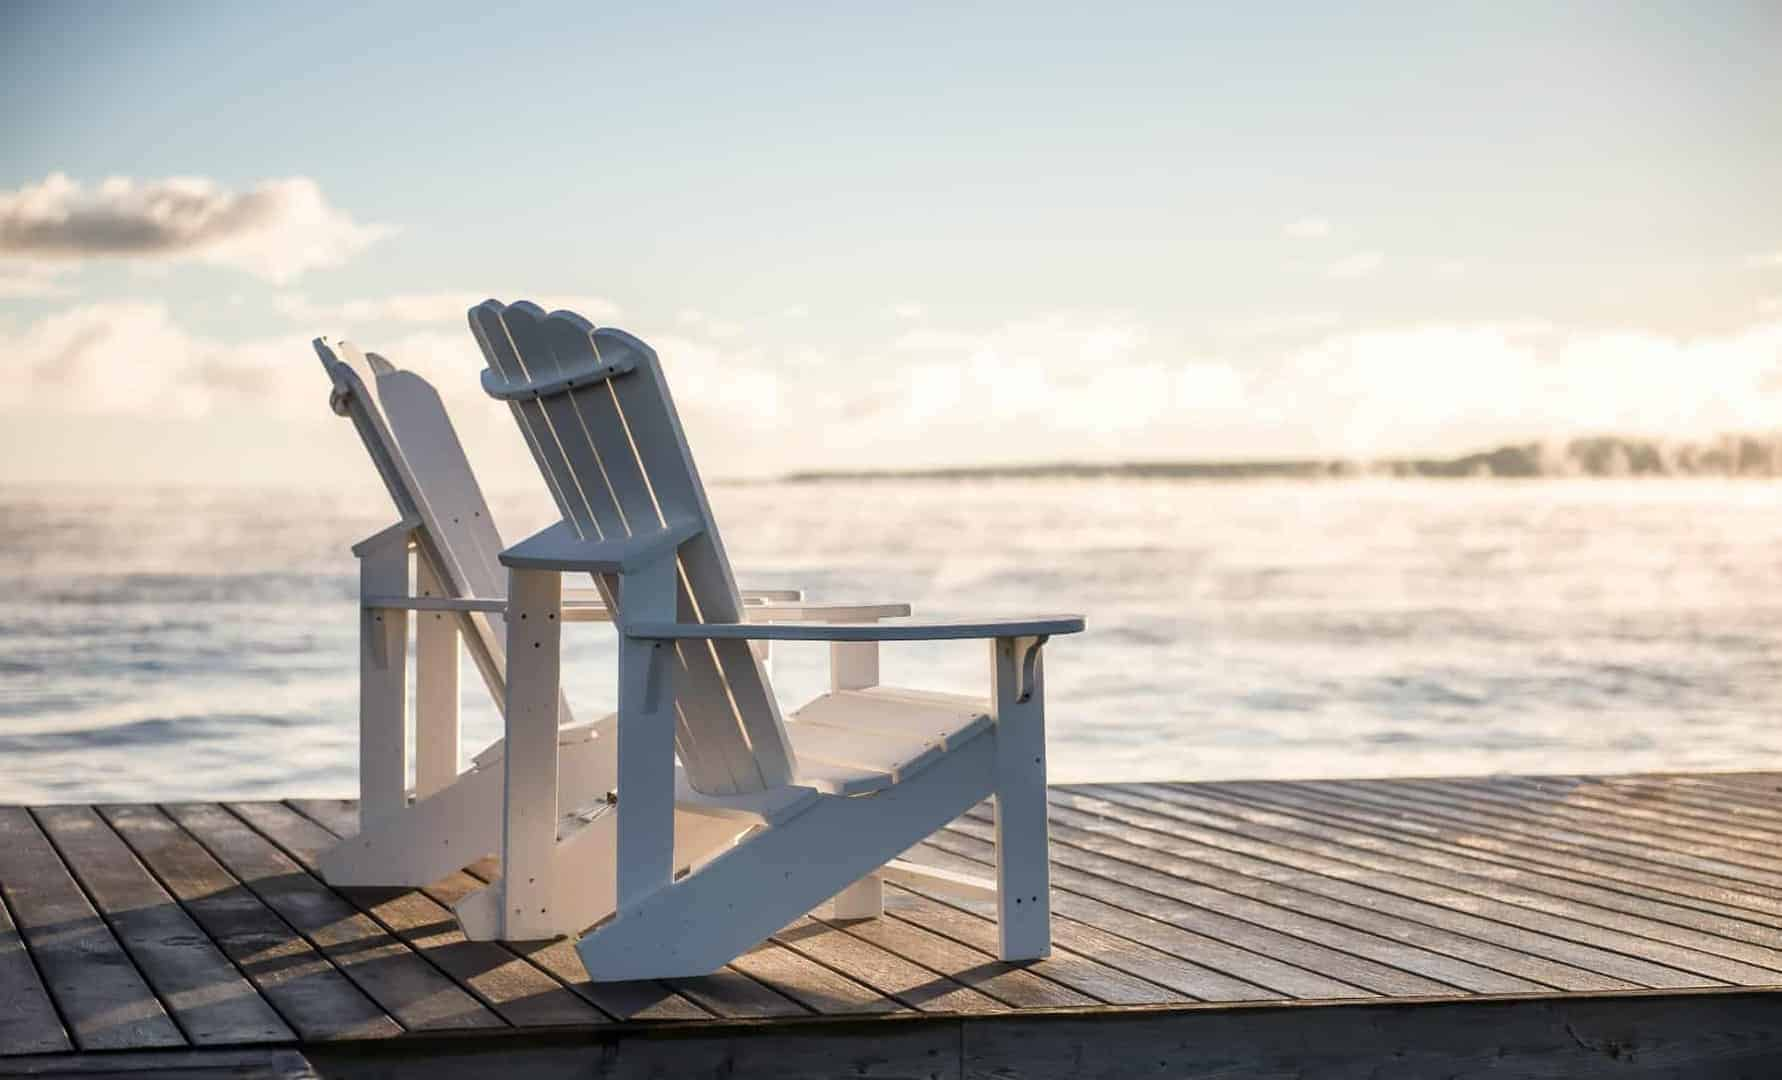 Two empty chairs in front of water